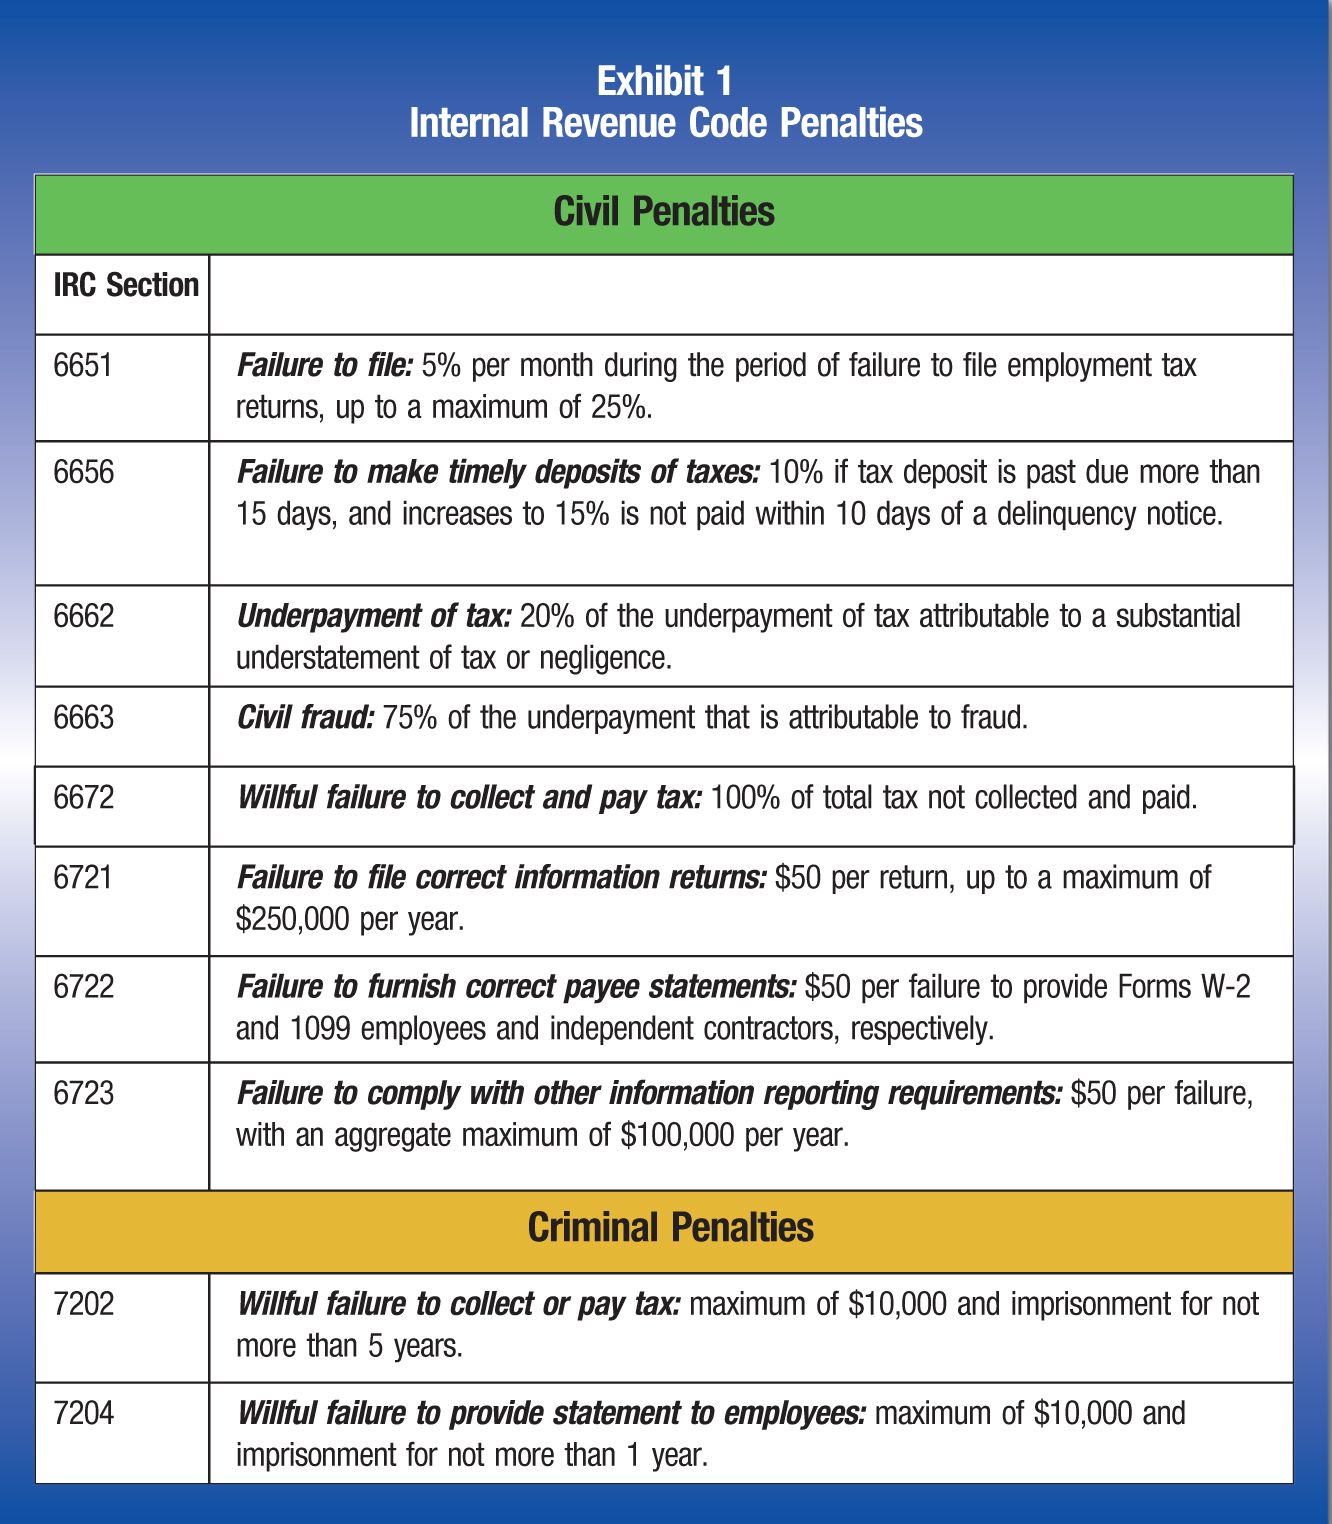 Civil Penalties IRC Section 6651; Failure to file: 5% per month during the period of failure to file employment tax returns, up to a maximum of 25%. 6656; Failure to make timely deposits of taxes: 10% if tax deposit is past due more than 15 days, and increases to 15% is not paid within 10 days of a delinquency notice. 6662; Underpayment of tax: 20% of the underpayment of tax attributable to a substantial understatement of tax or negligence. 6663; Civil fraud: 75% of the underpayment that is attributable to fraud. 6672; Willful failure to collect and pay tax: 100% of total tax not collected and paid. 6721; Failure to file correct information returns: $50 per return, up to a maximum of $250,000 per year. 6722; Failure to furnish correct payee statements: $50 per failure to provide Forms W-2 and 1099 employees and independent contractors, respectively. 6723; Failure to comply with other information reporting requirements: $50 per failure, with an aggregate maximum of $100,000 per year. Criminal Penalties 7202; Willful failure to collect or pay tax: maximum of $10,000 and imprisonment for not more than 5 years. 7204; Willful failure to provide statement to employees: maximum of $10,000 and imprisonment for not more than 1 year.